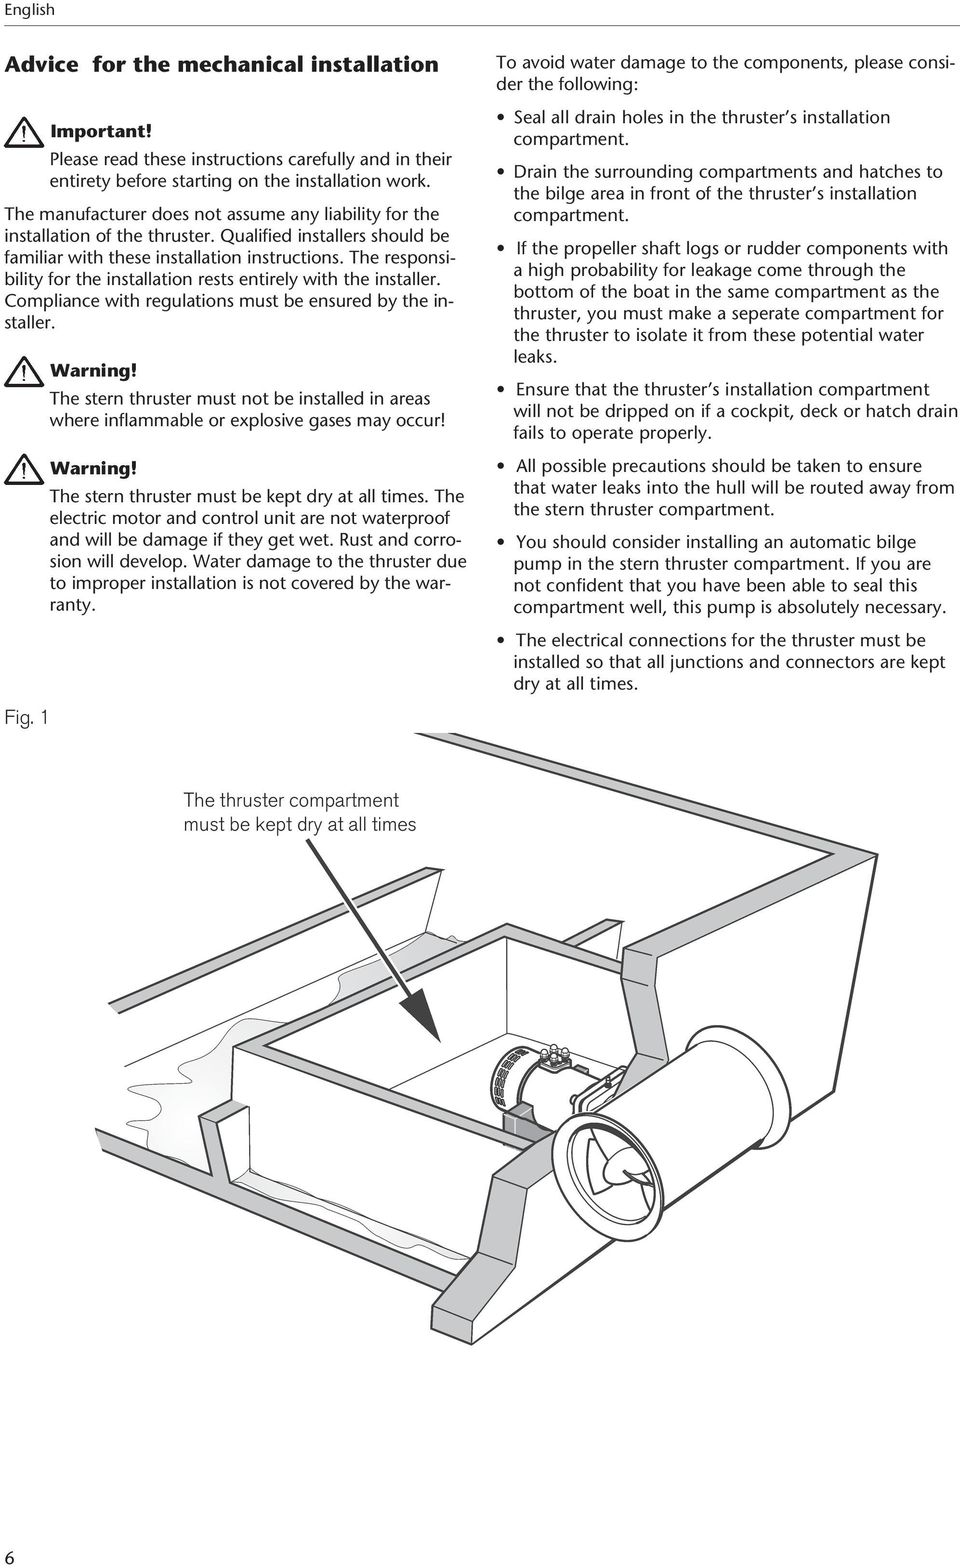 Volvo Penta Bow Thruster Wiring Diagram Golden Schematic D275 The Responsibility For Installation Rests Entirely With Installer Compliance Regulations Must Be